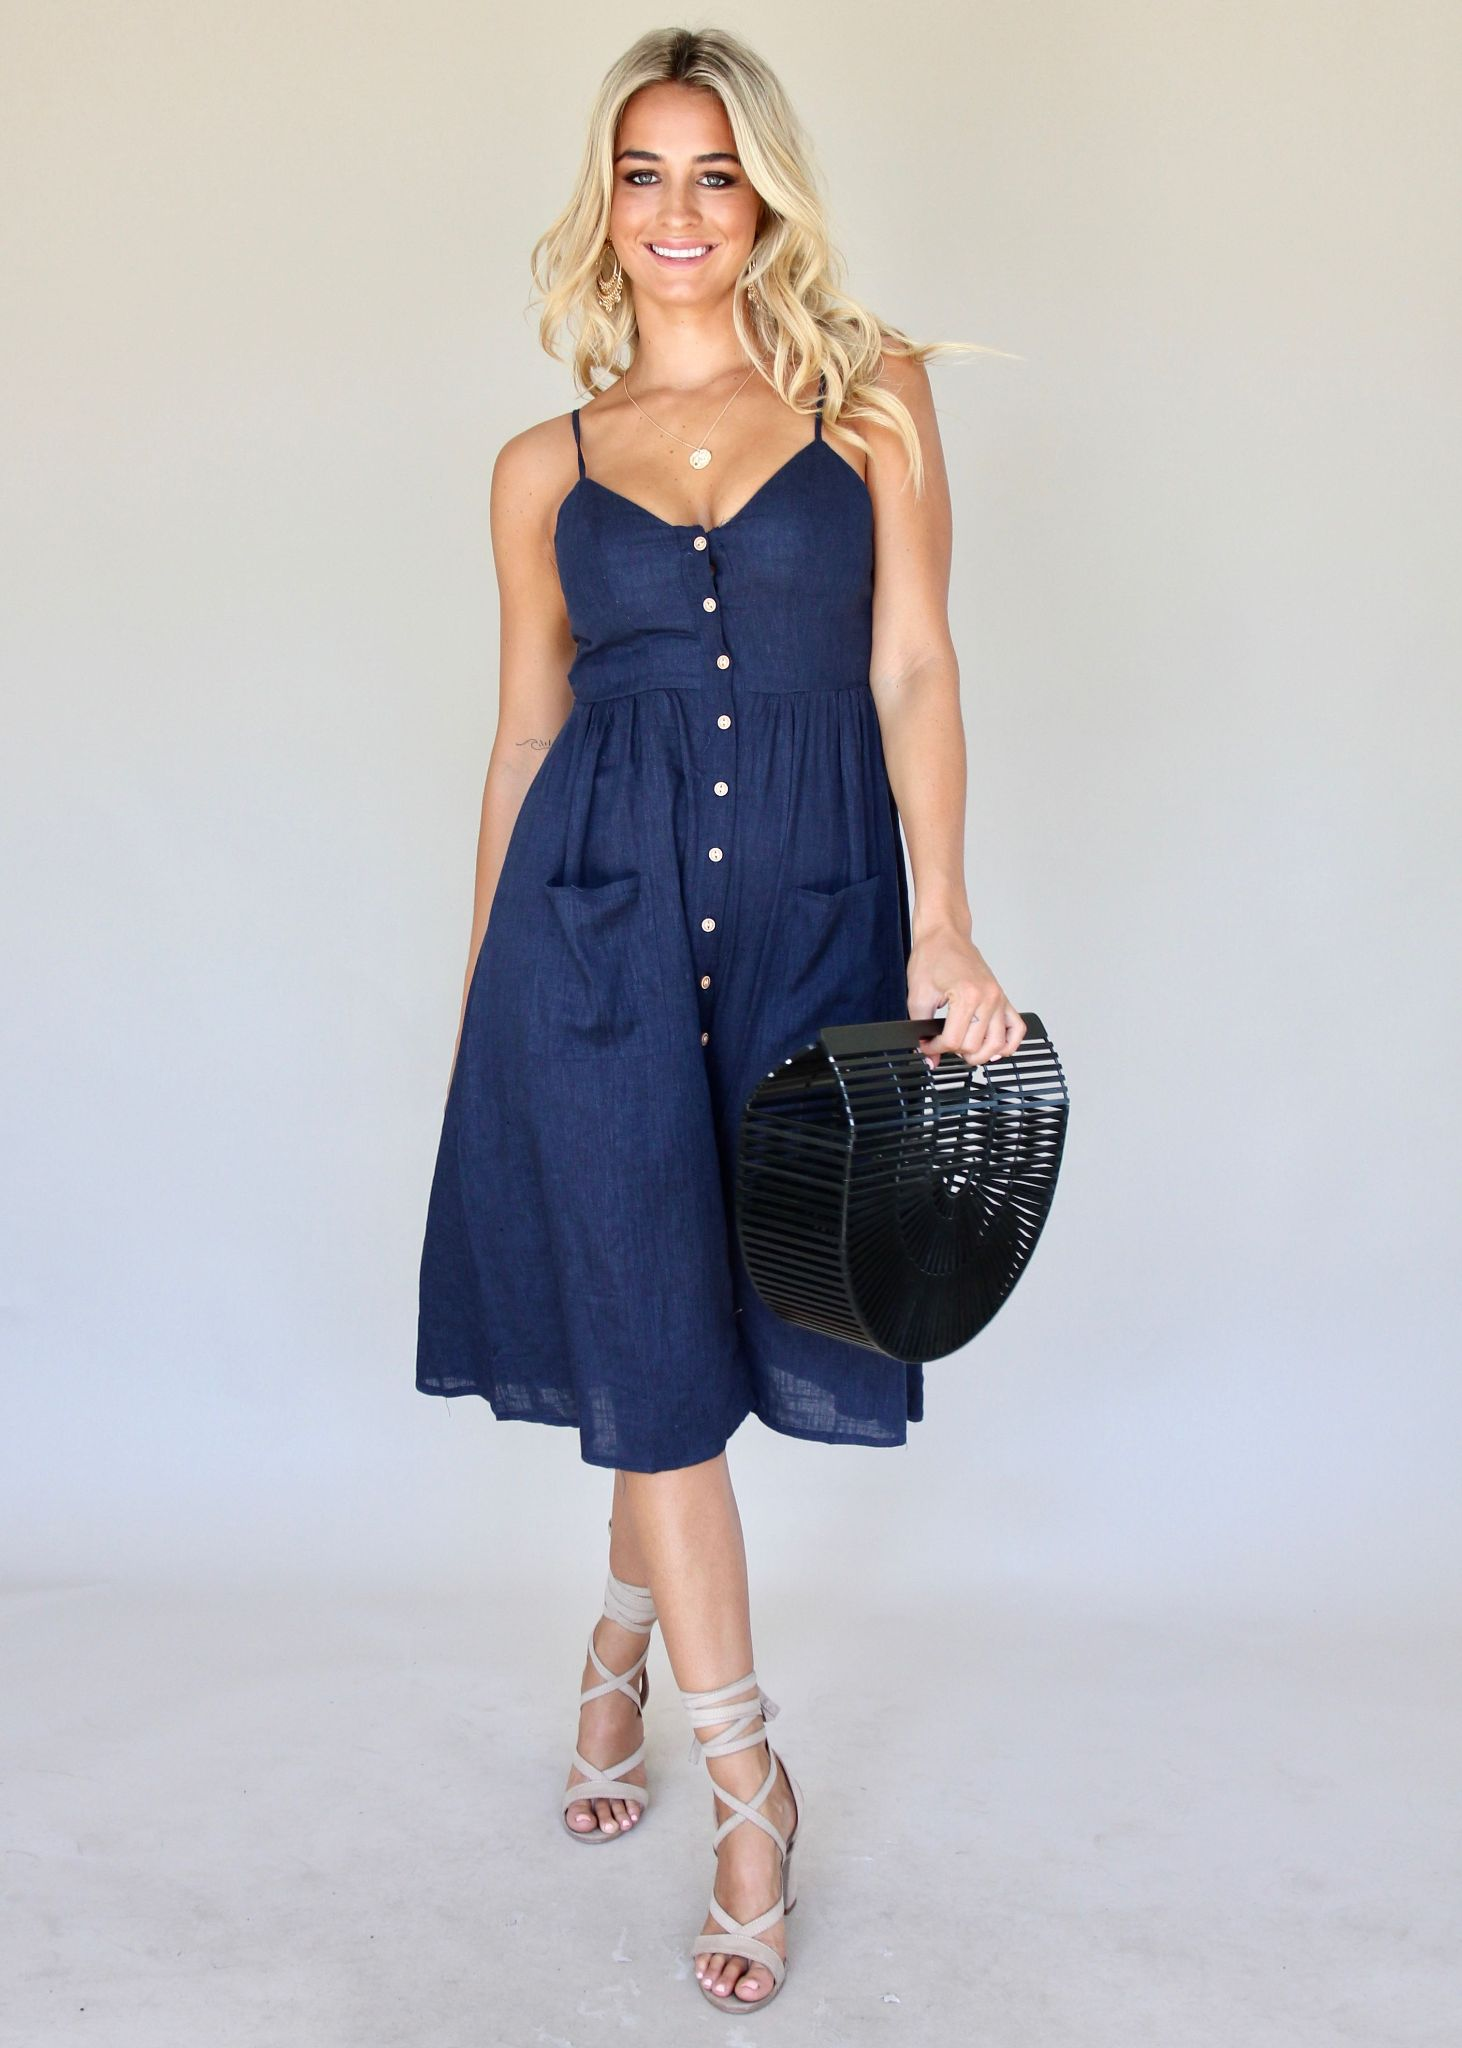 Amari Swing Dress - Navy